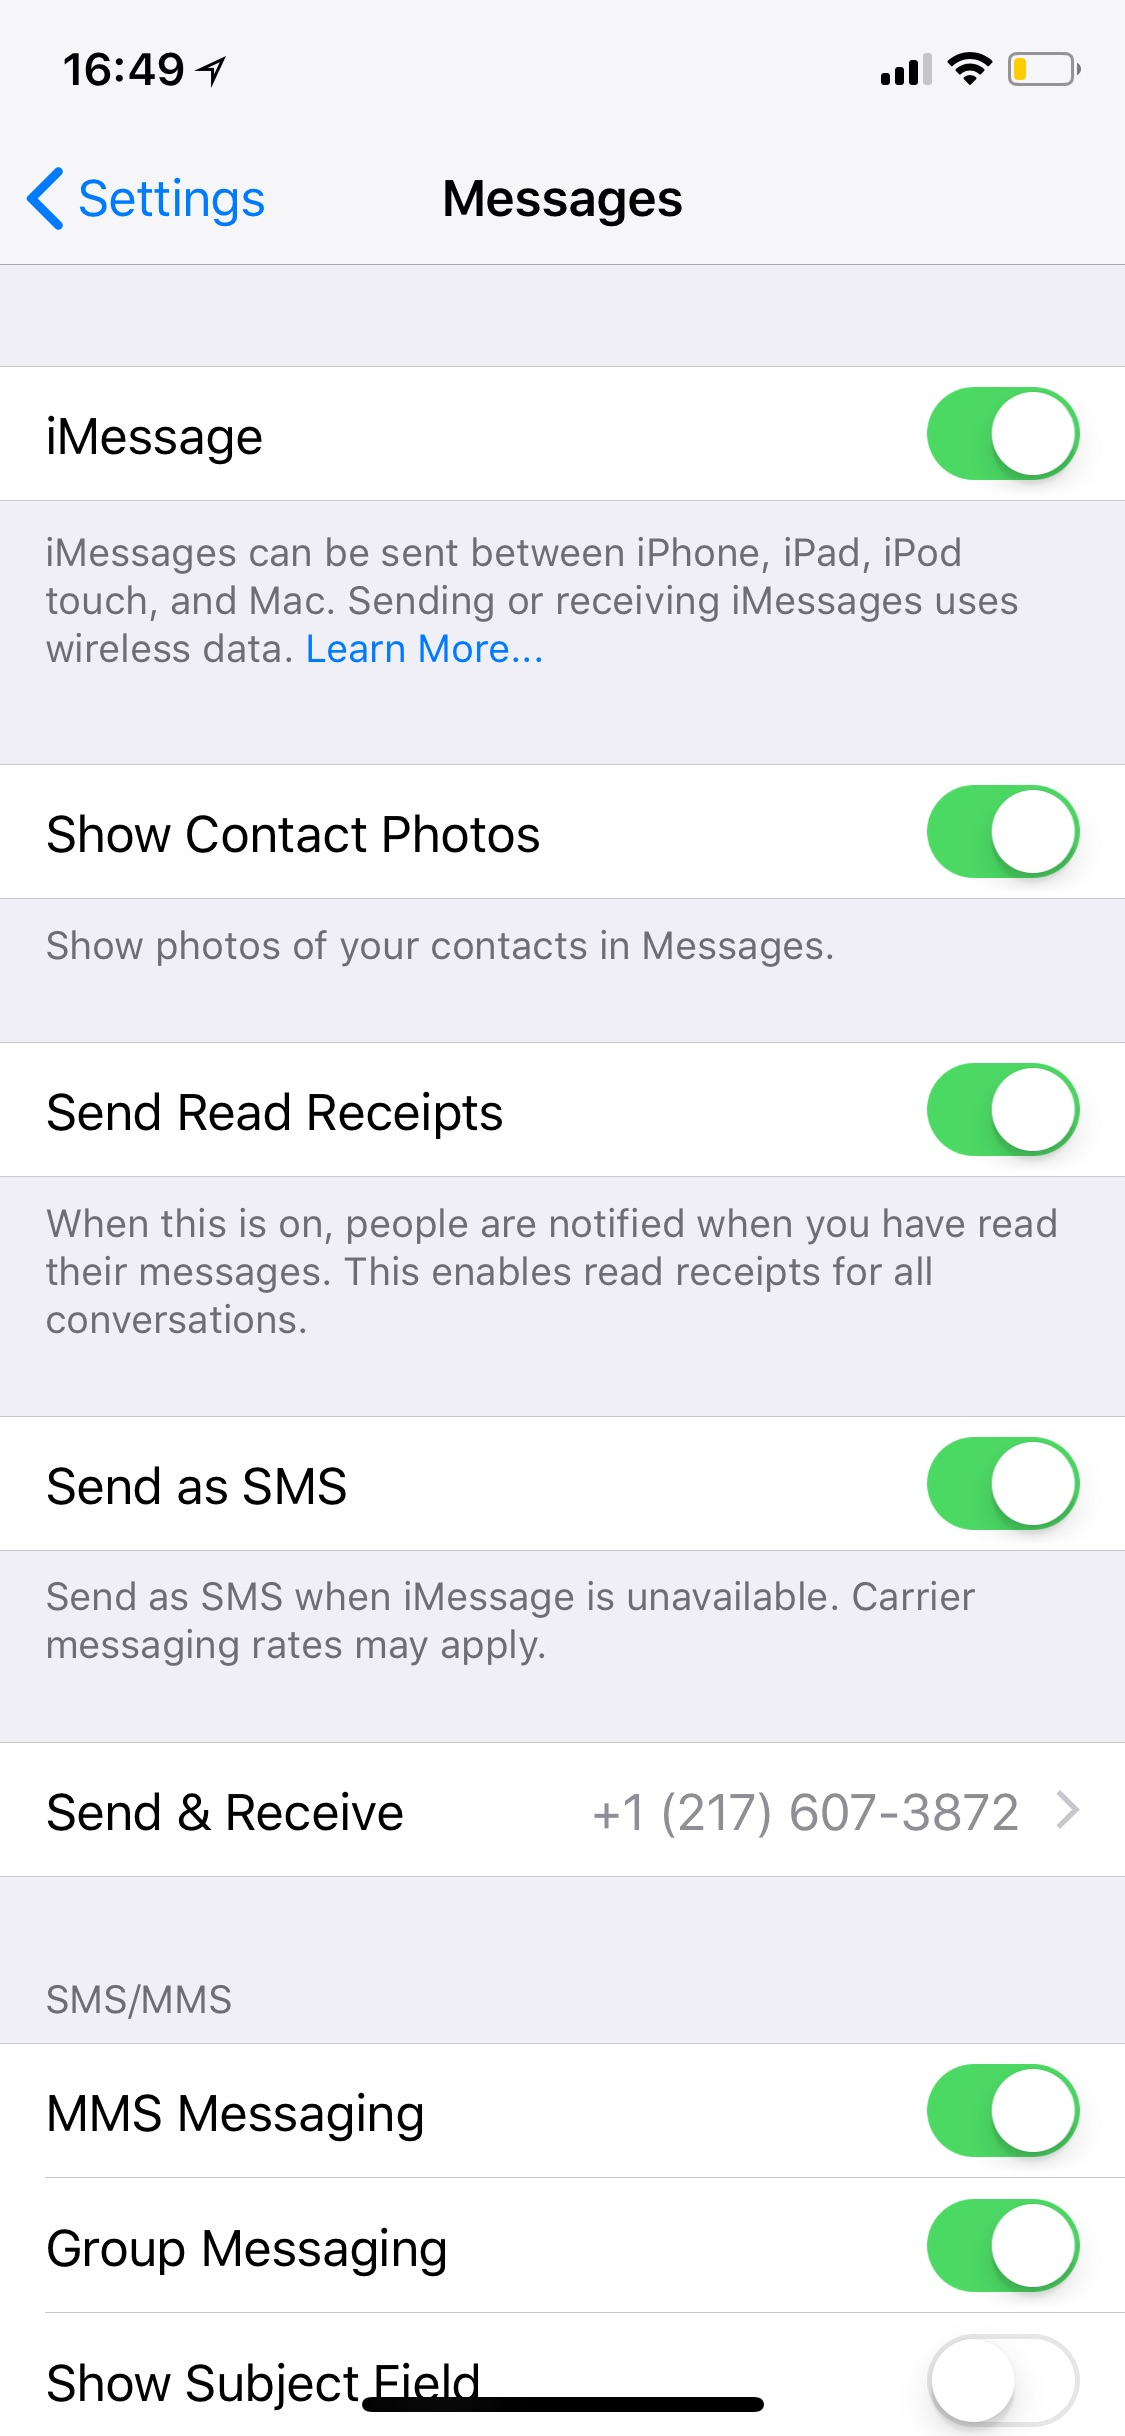 Text Messages Are Disappearing? Fix - macReports